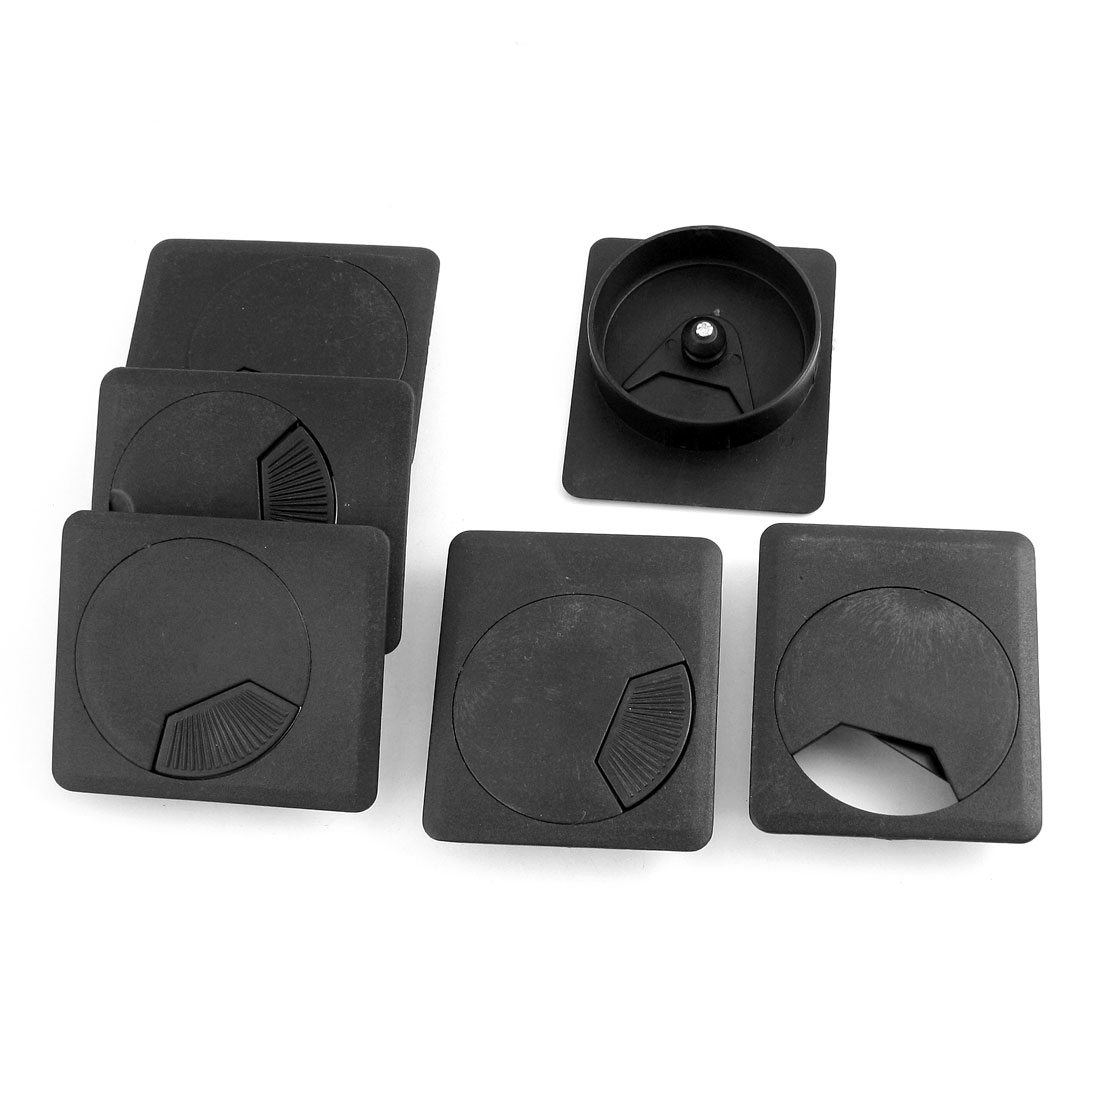 office desk cable hole. Unique Bargains 6 Pcs Office Computer Desk Cable Hole Covers Plastic  Grommets Gray 55mm Office Desk Cable Hole S